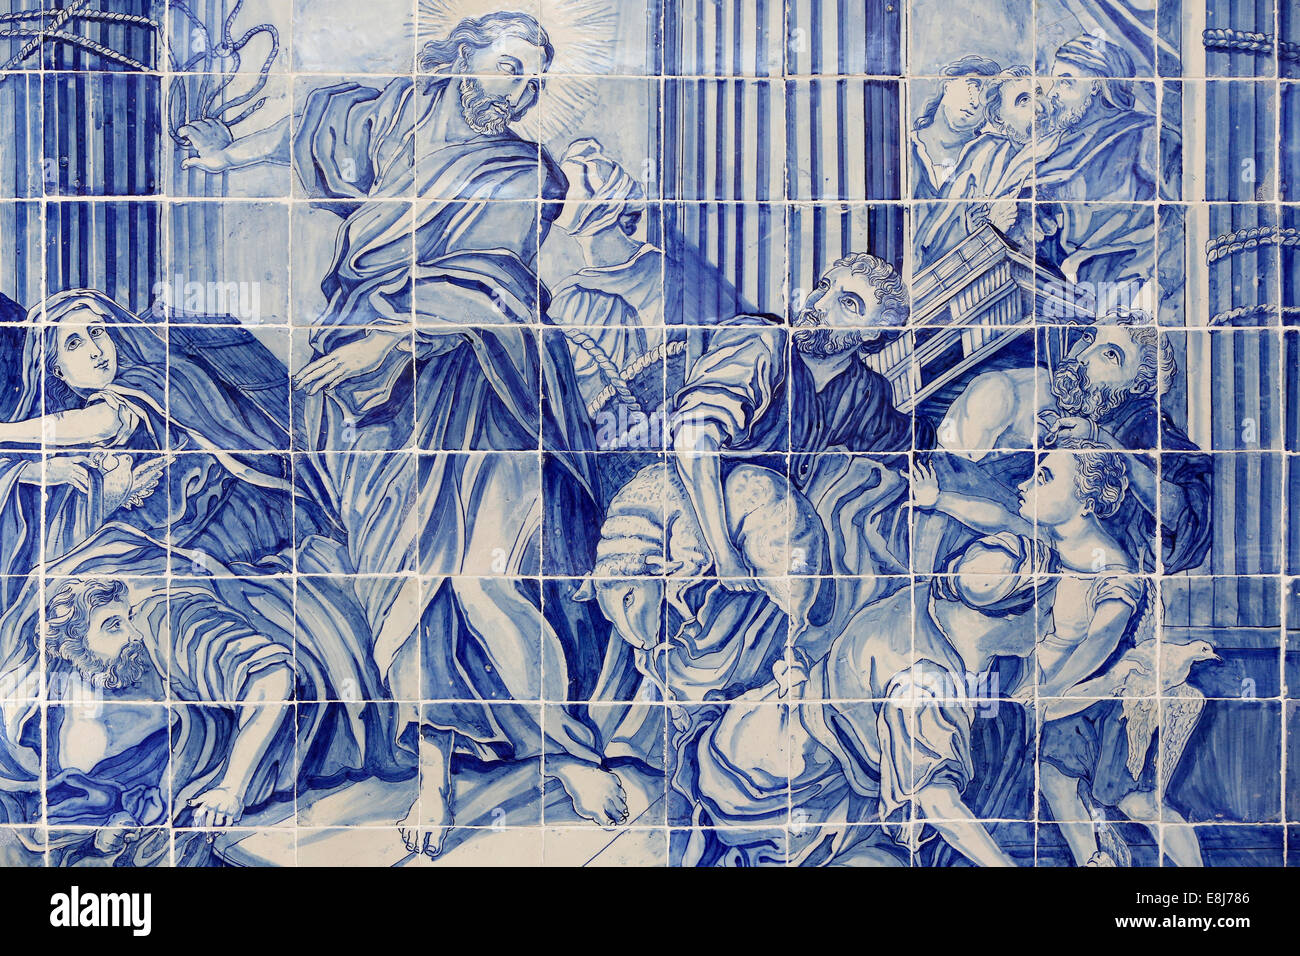 Azulejo in Bonfim church : Jesus driving the merchants out of the Temple - Stock Image